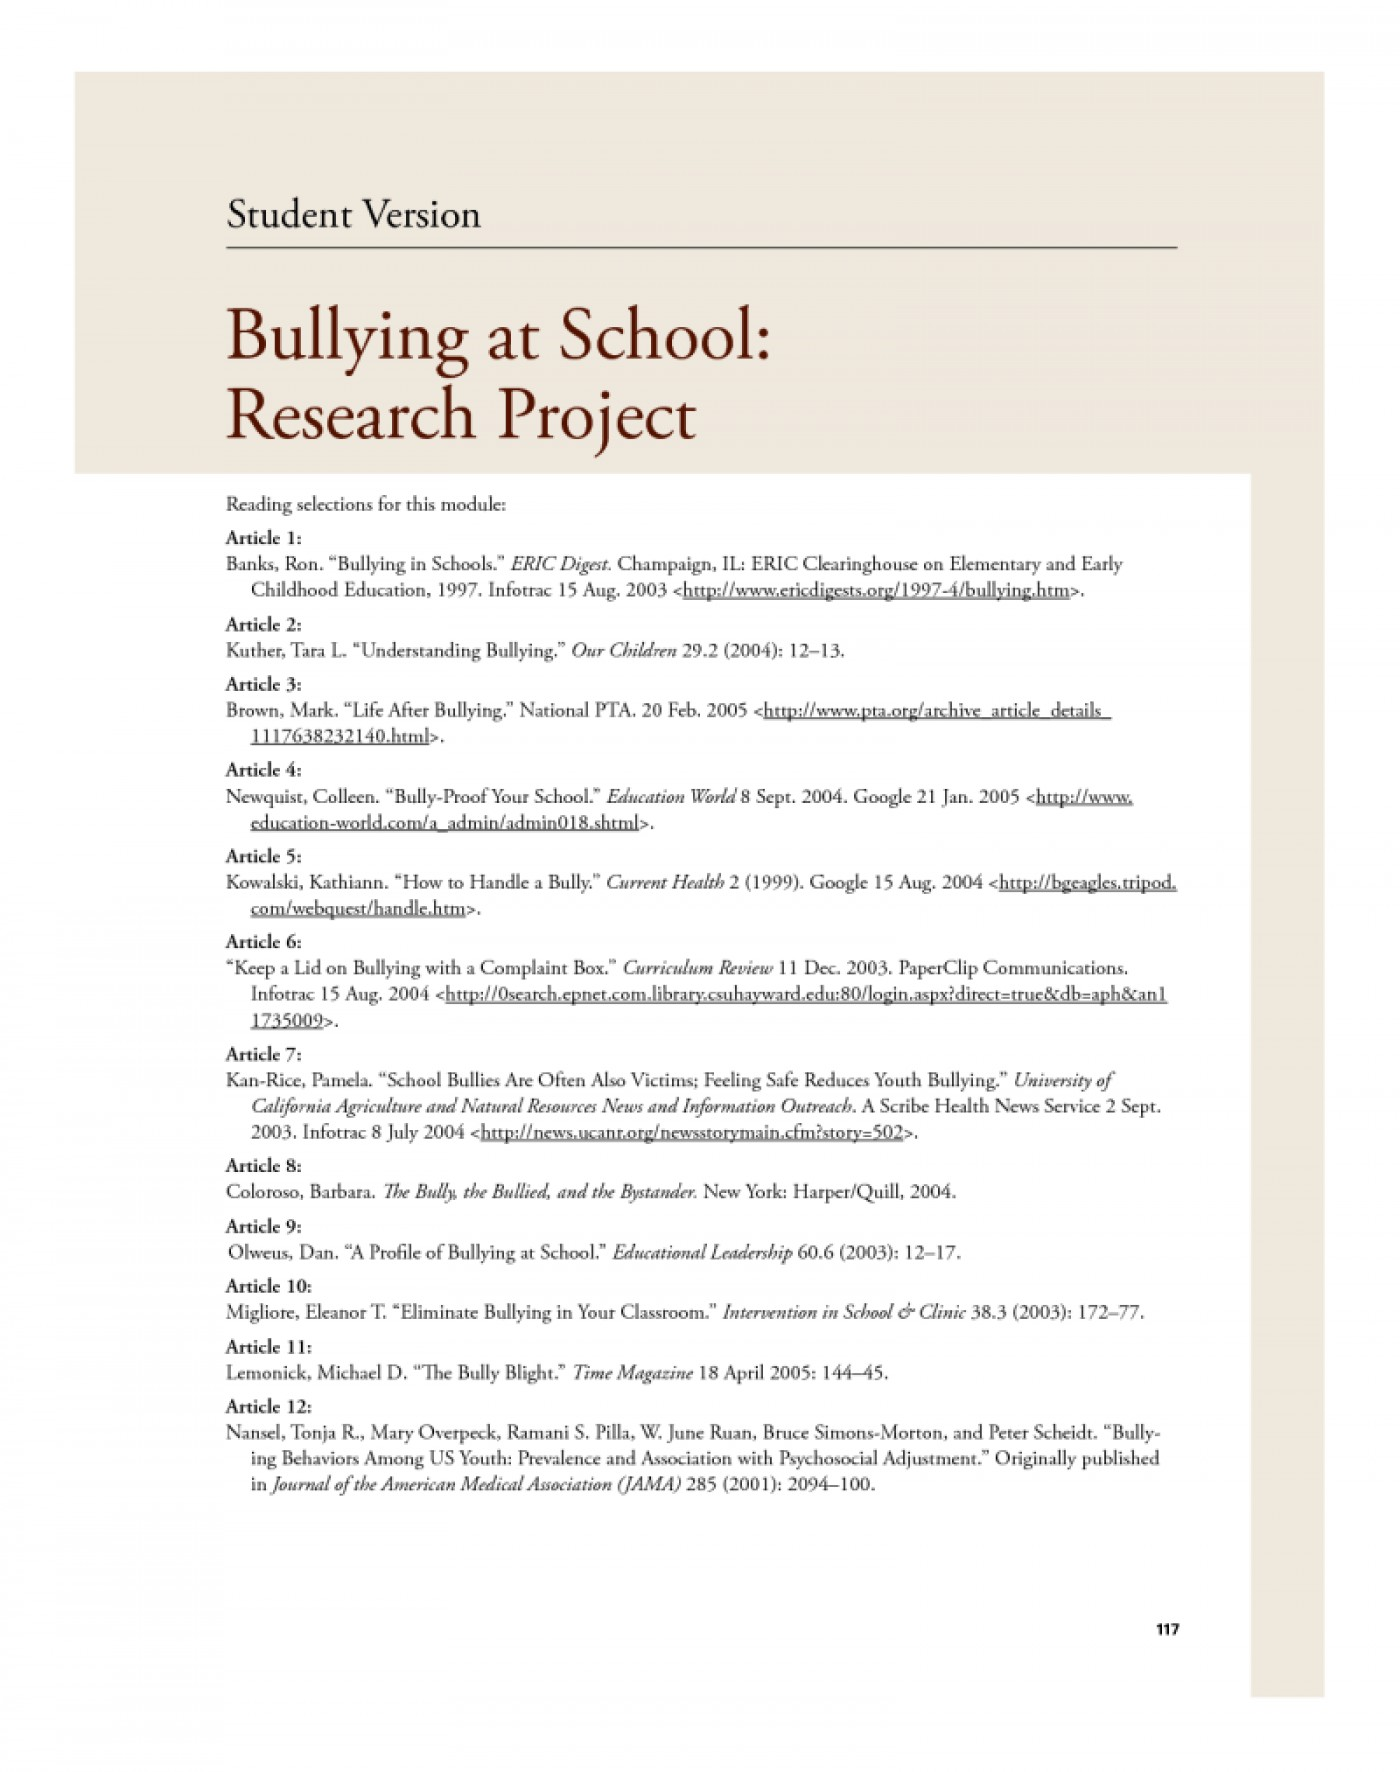 011 Persuasive Essay On Bullying Example Dreaded Argumentative Topics In Schools Examples Cyberbullying 1400